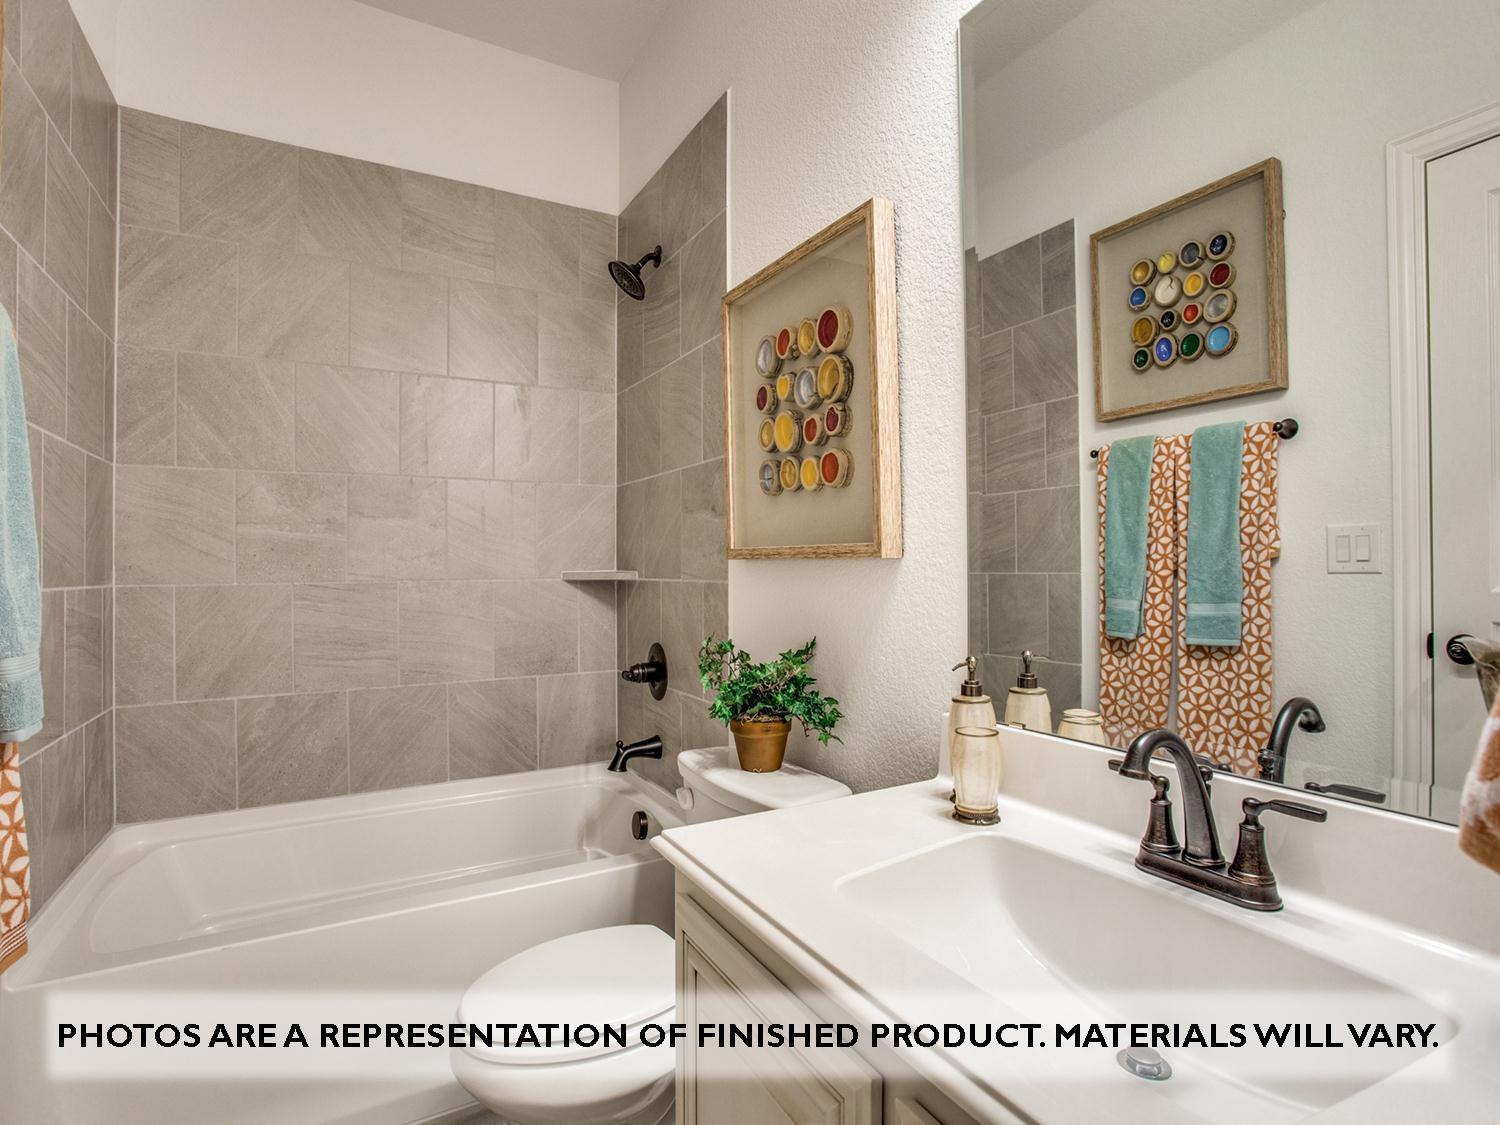 Bathroom featured in the Primrose II By Bloomfield Homes in Dallas, TX